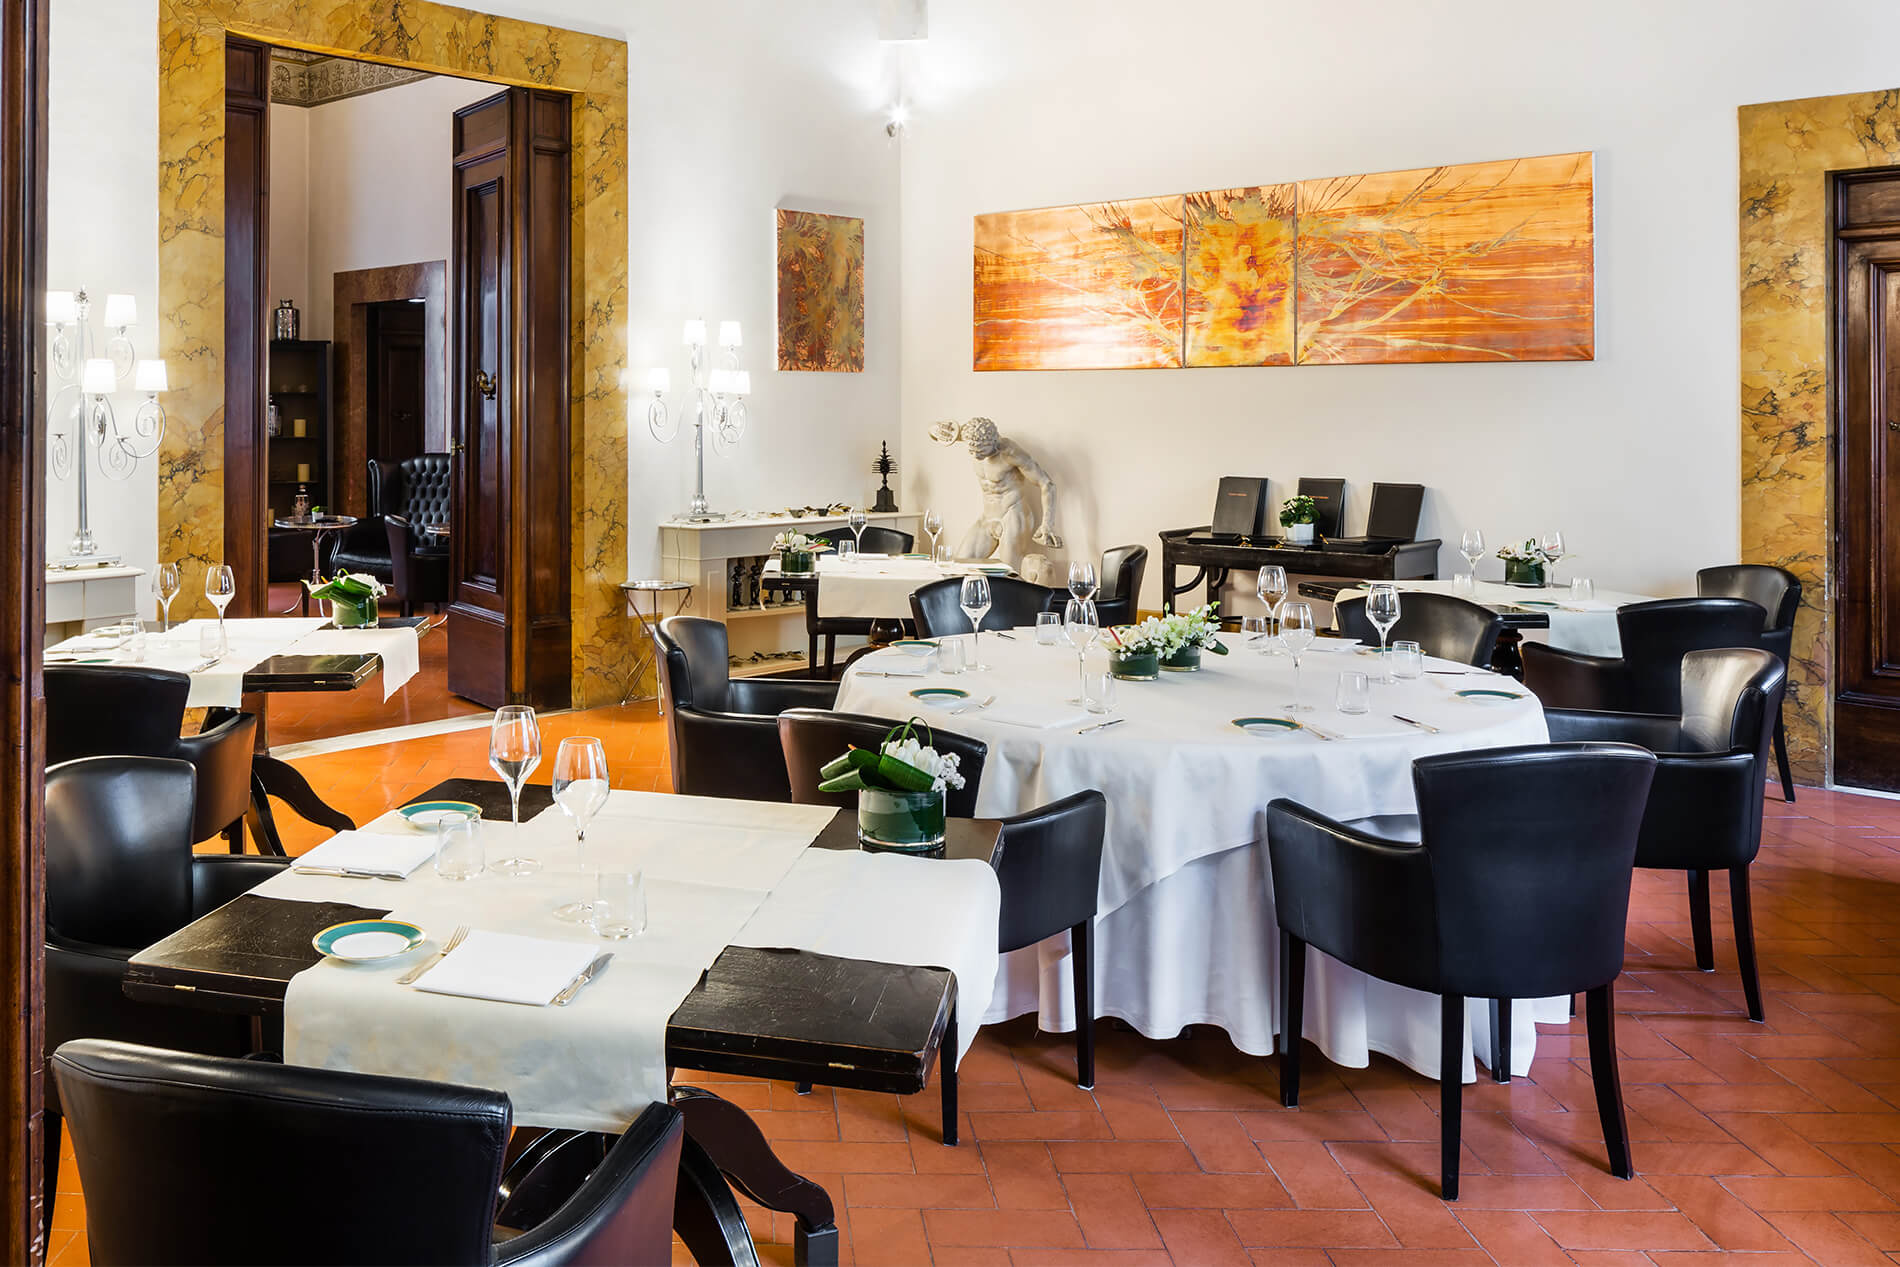 Guelfi and Ghibellini restaurant in Florence